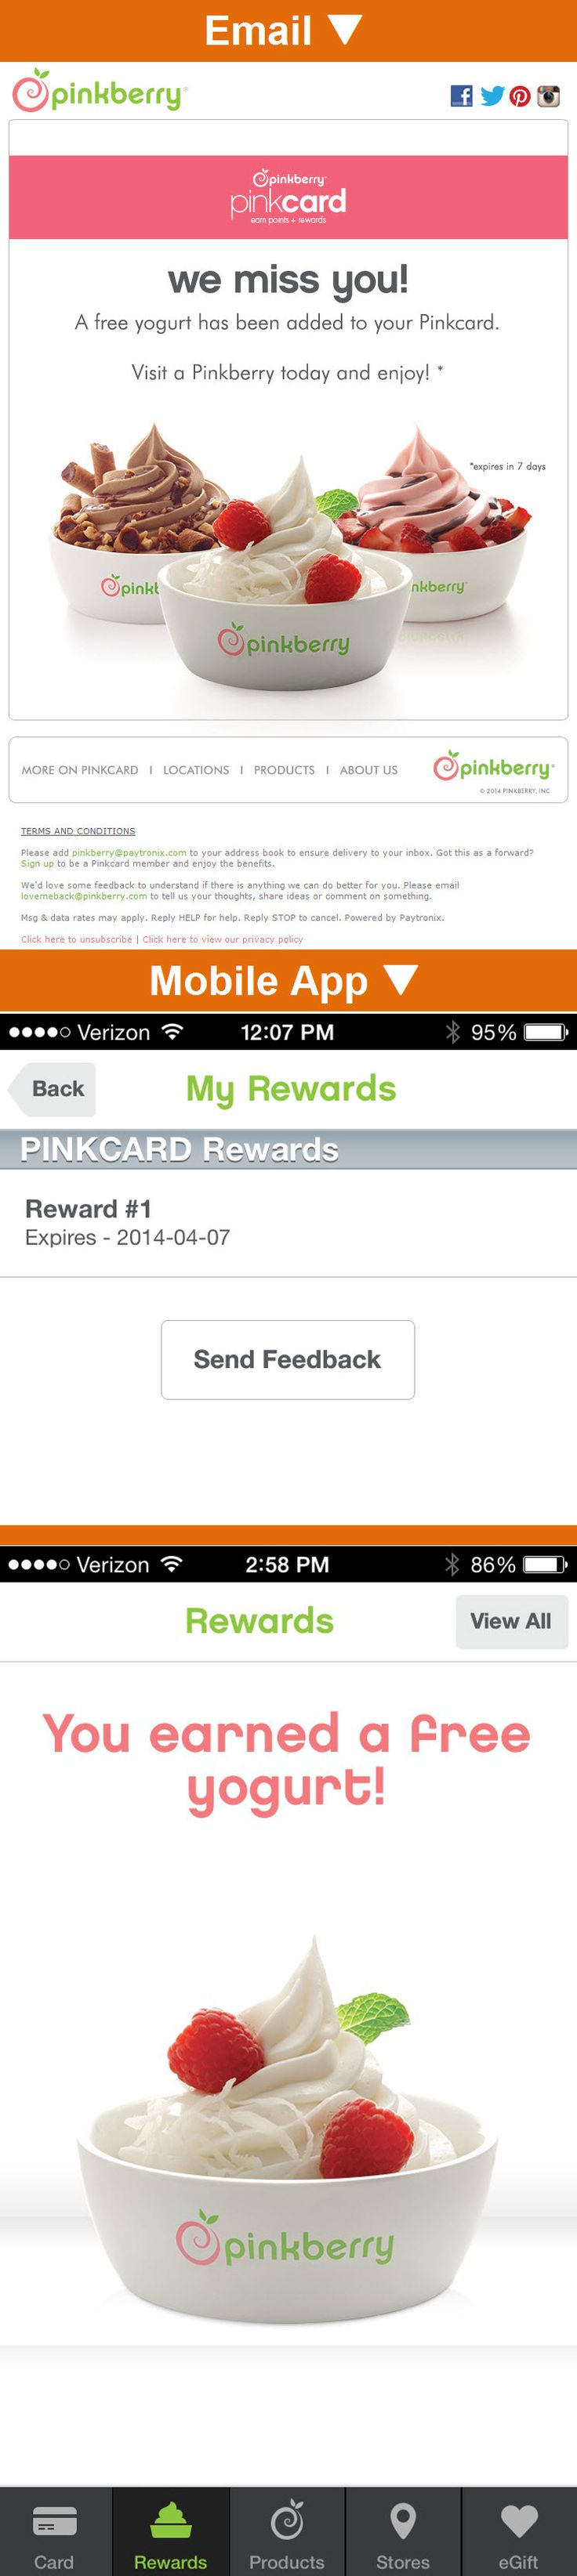 Pinkberry >> sent 3/2014 >> We Miss You! >> Because their mobile app is their loyalty card (as well as a payment card), this frozen yogurt chain pays close attention to app usage. I hadn't used mine in a few months and received this mobile app reengagement email that gave me a free reward to get me back in the yogurt-buying groove. —Todd Wilson, Manager, Strategic Services, Salesforce ExactTarget Marketing Cloud